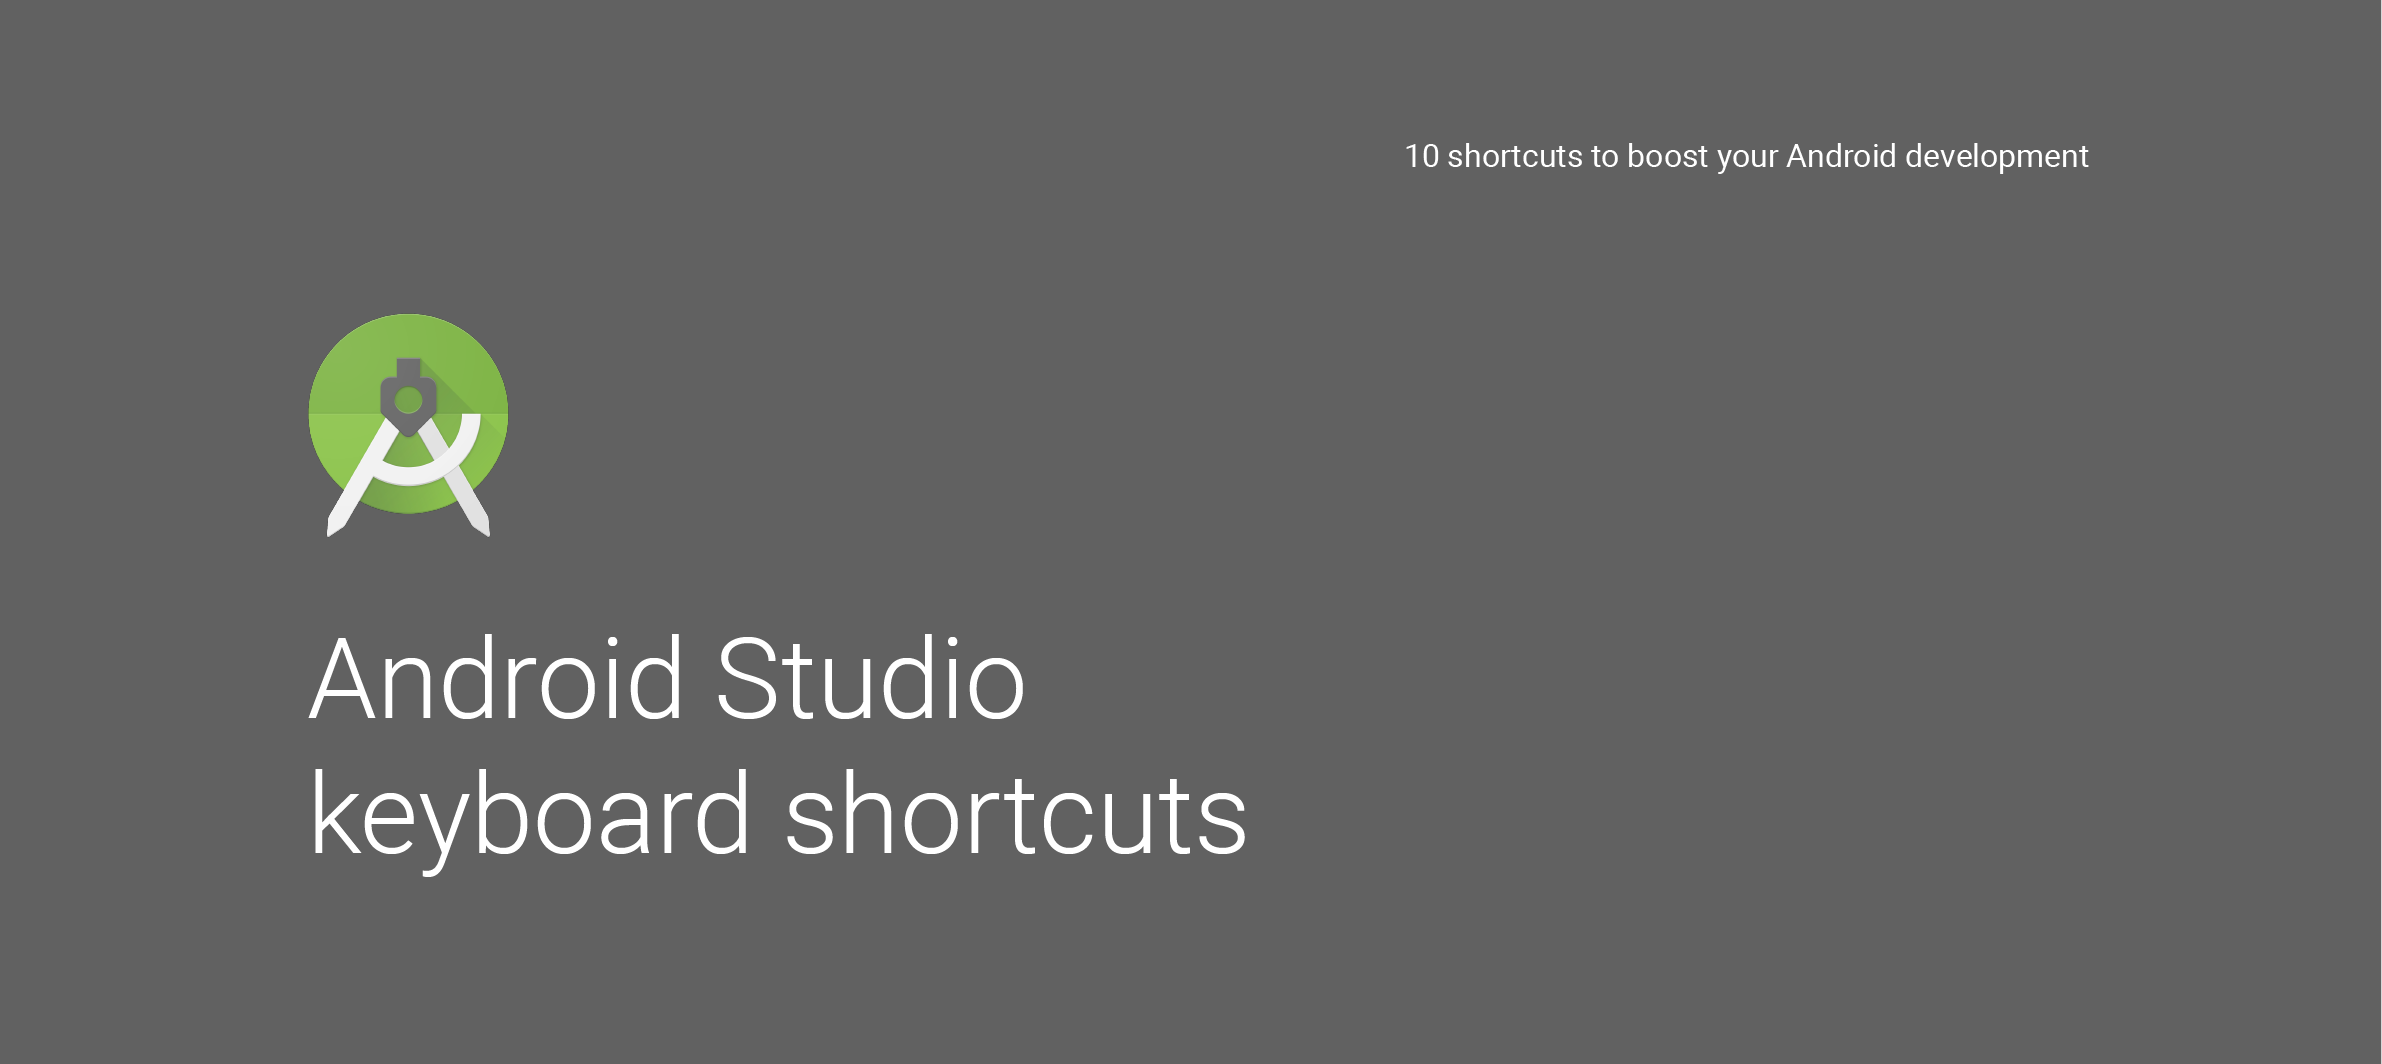 10 shortcuts to boost your Android development - AndroidPub